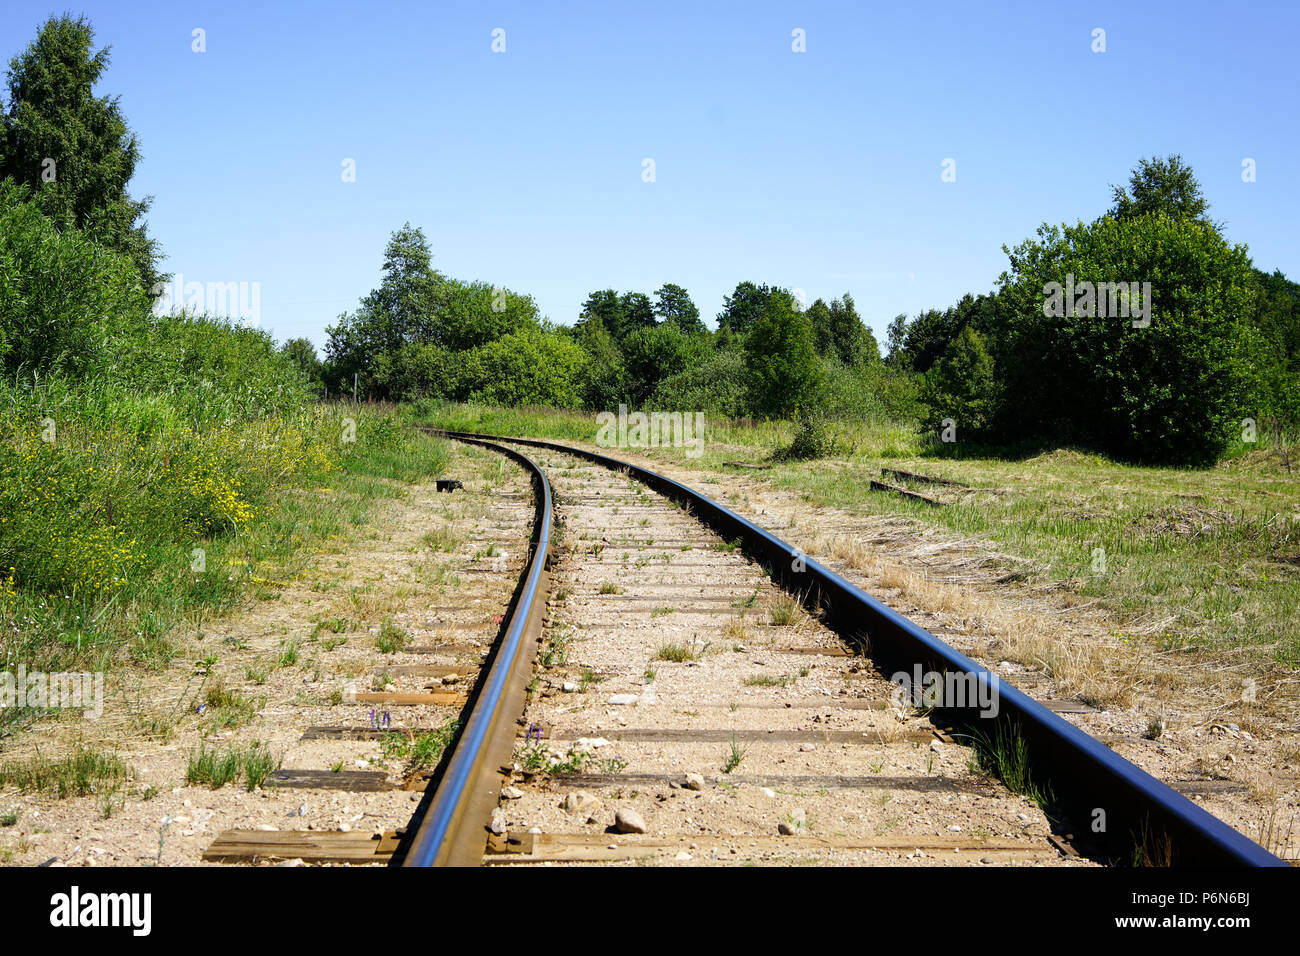 Curving rail line winds its way through trees and forests. - Stock Image